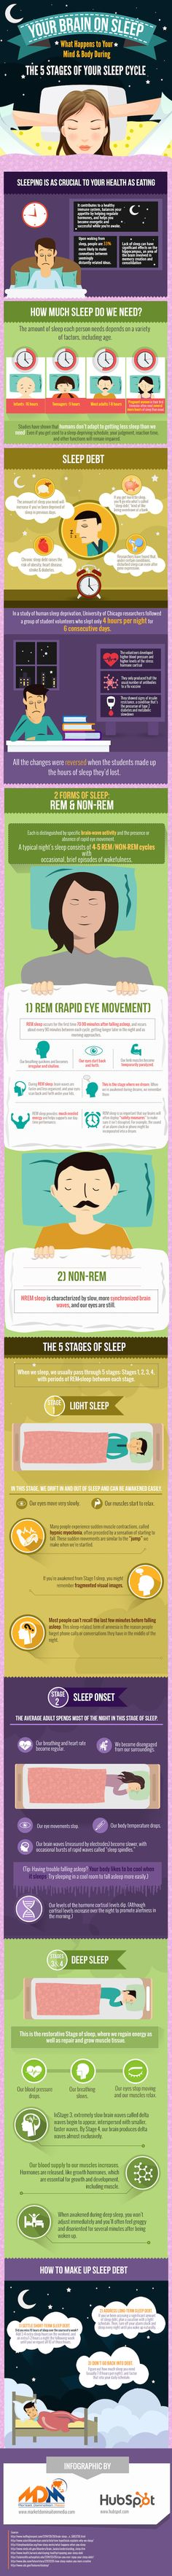 This is your brain on sleep. Here's how much sleep you really need to be productive and alert